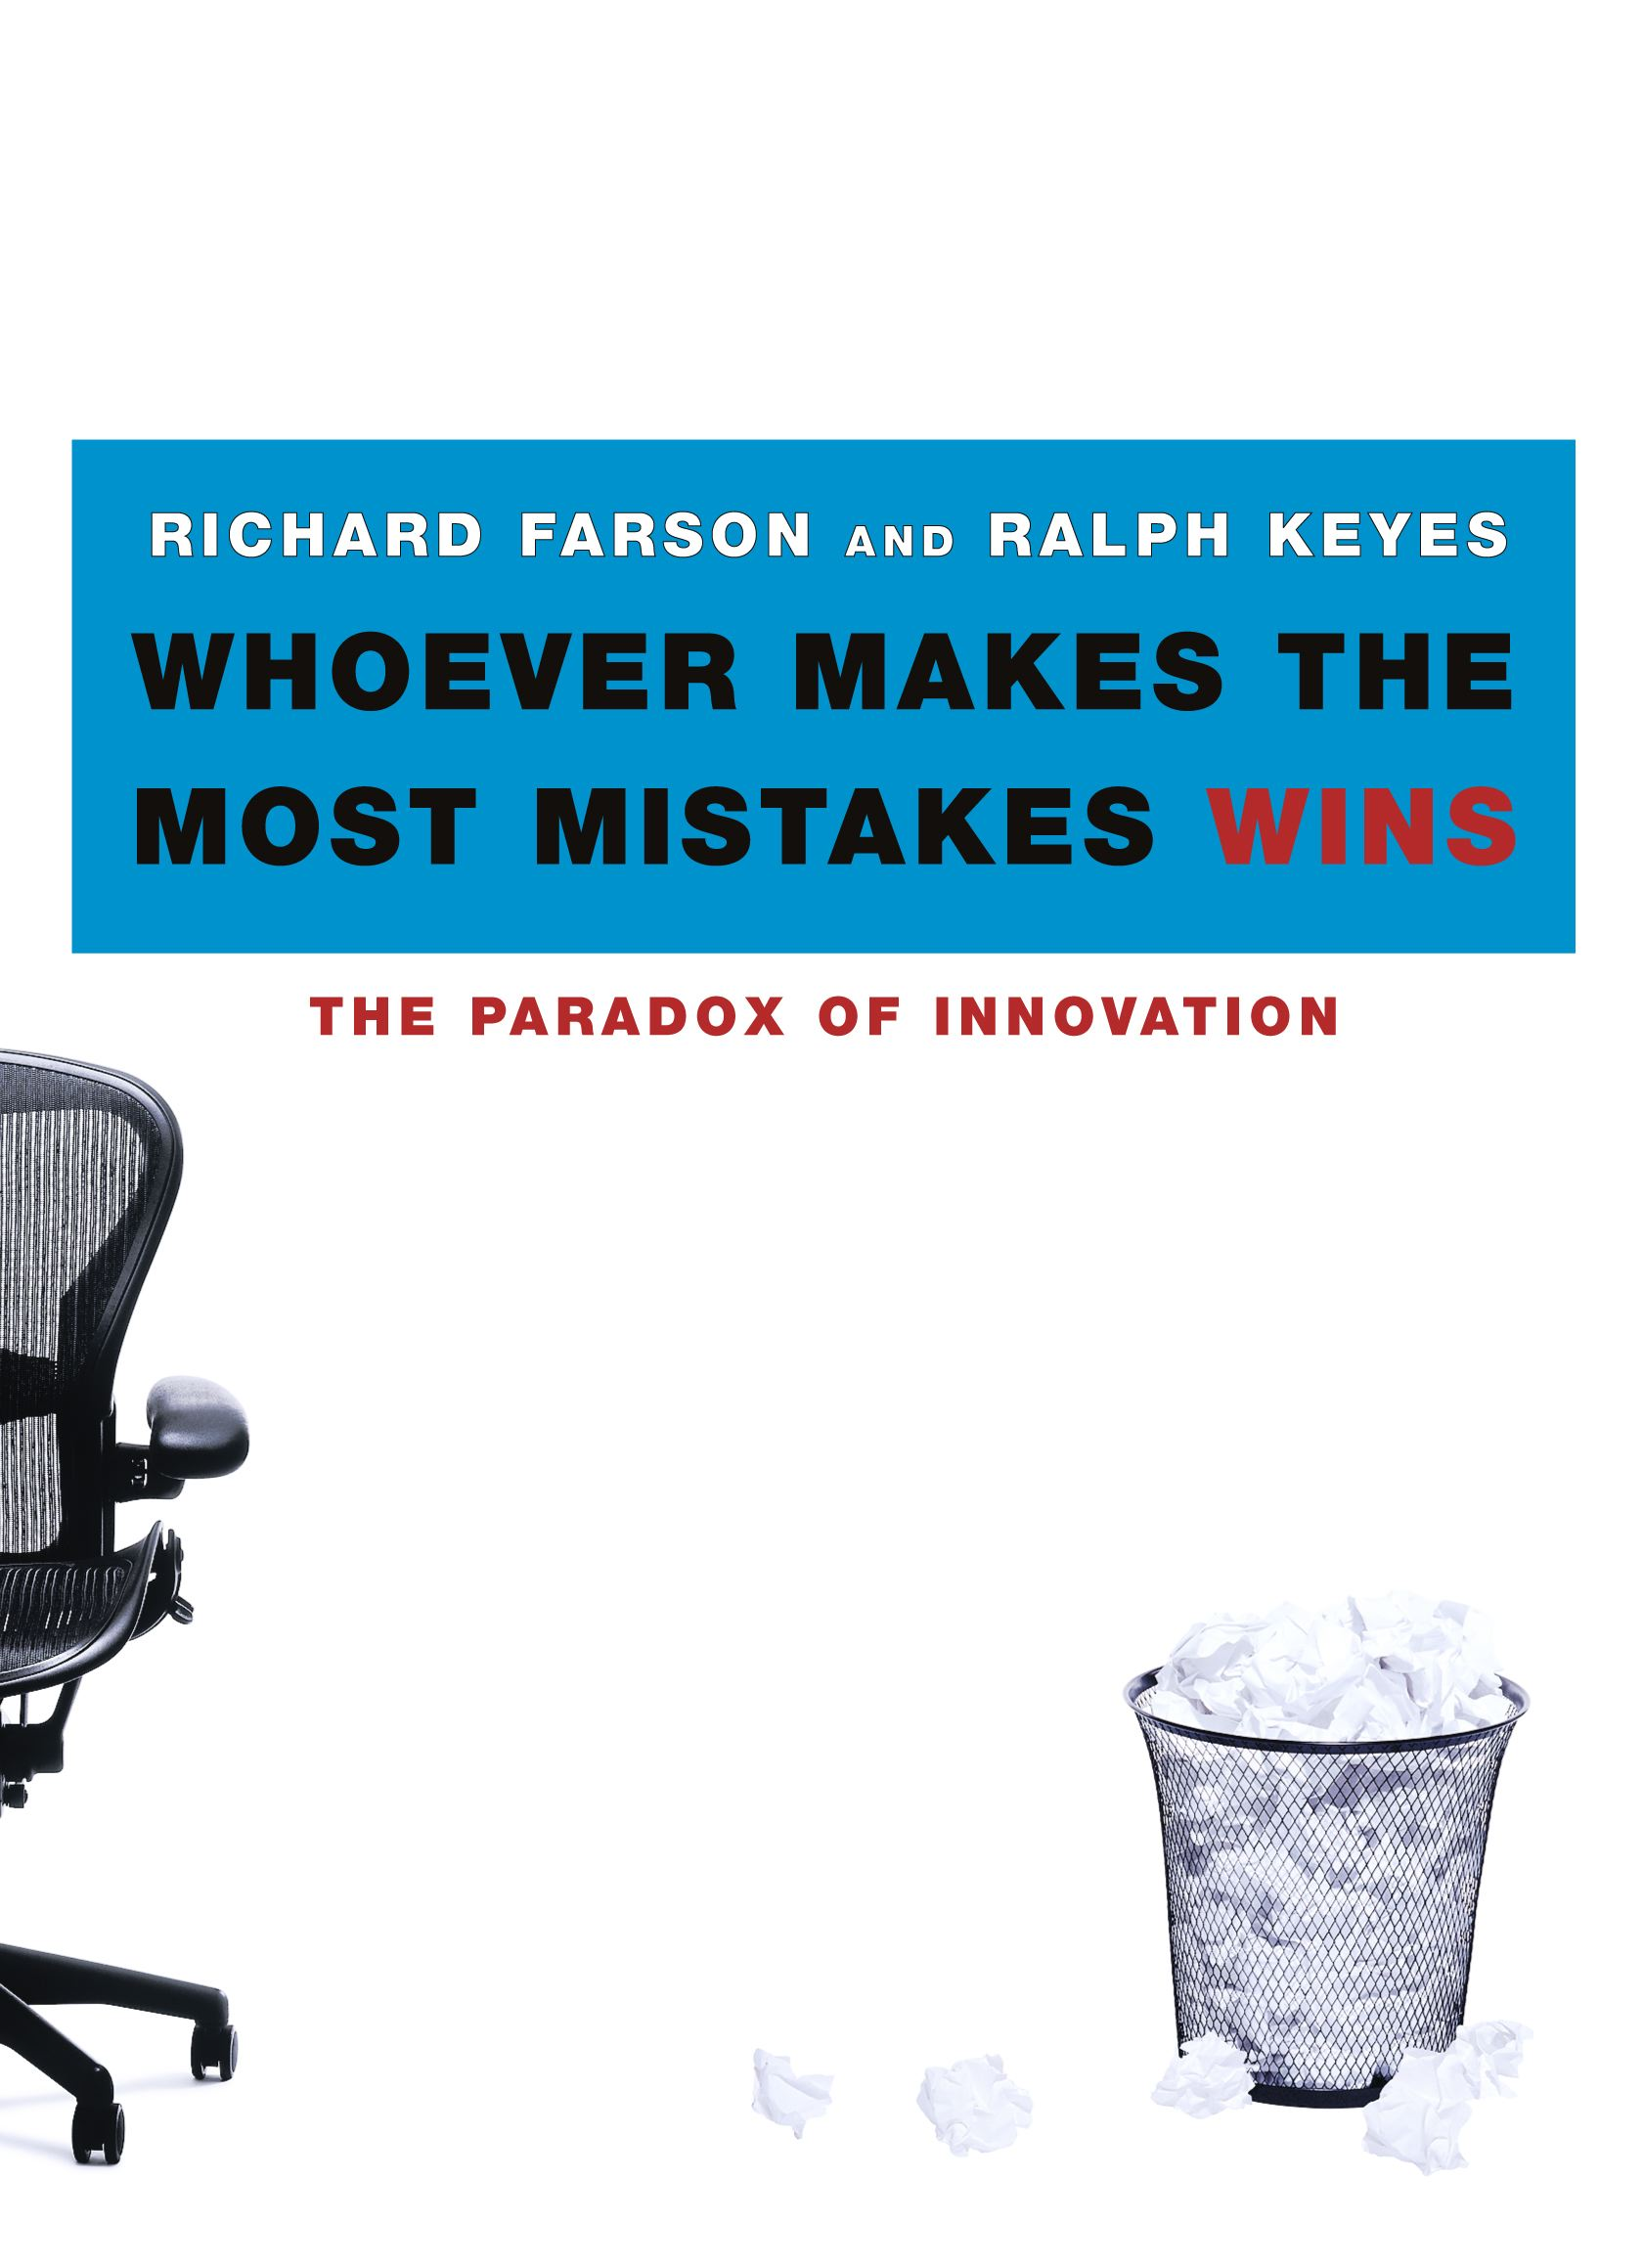 Whoever Makes The Most Mistakes Wins Ebook By Richard Farson, Ralph Keyes   Official Publisher Page  Simon & Schuster